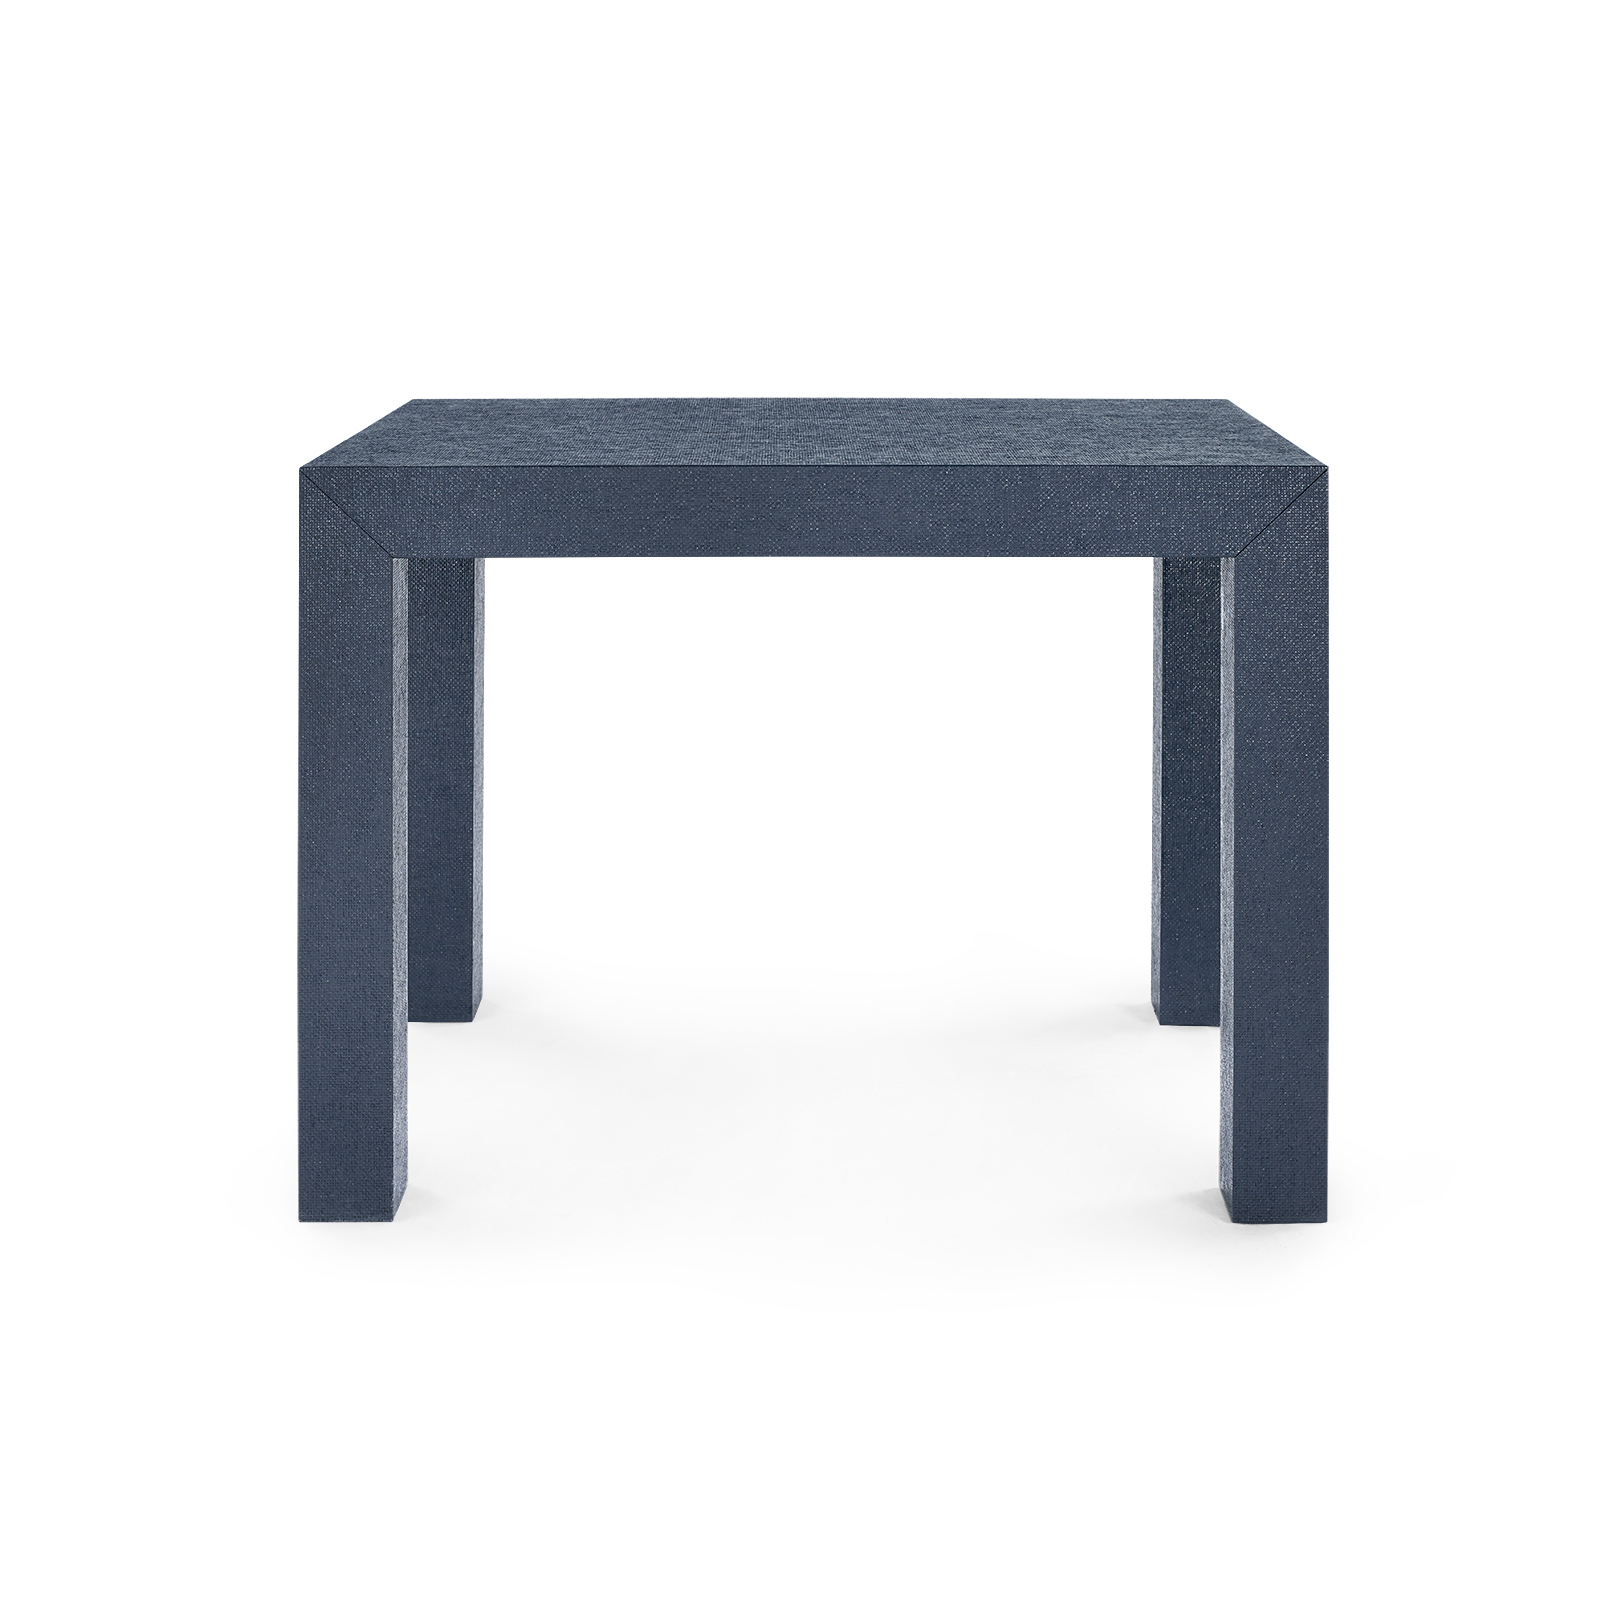 Parson coffee table in navy blue bungalow 5 - Parson Coffee Table In Navy Blue Bungalow 5